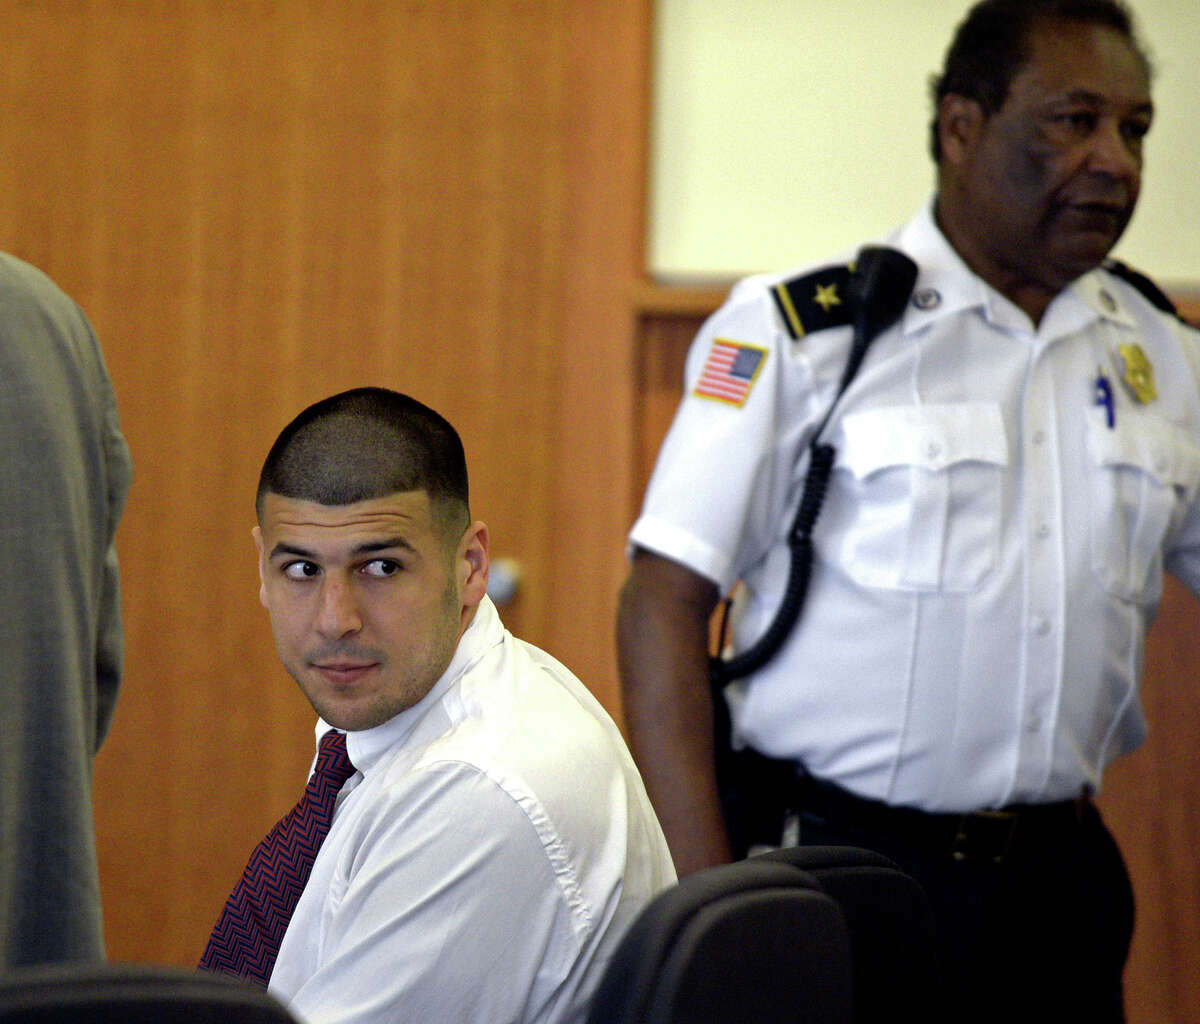 Fromer New England Patriots football player Aaron Hernandez looks back during a hearing in Fall River Superior Court, Tuesday, Sept. 30, 2014, in Fall River, Mass. Hernandez's attorneys are arguing a motion to suppress evidence in his murder trial. They want to suppress evidence from a cell phone they say was illegally seized and a police interrogation they call unlawful. Hernandez is awaiting trial in the 2013 killing of semi-professional football player Odin Lloyd. (AP Photo/The Boston Herald, Ted Fitzgerald, Pool)